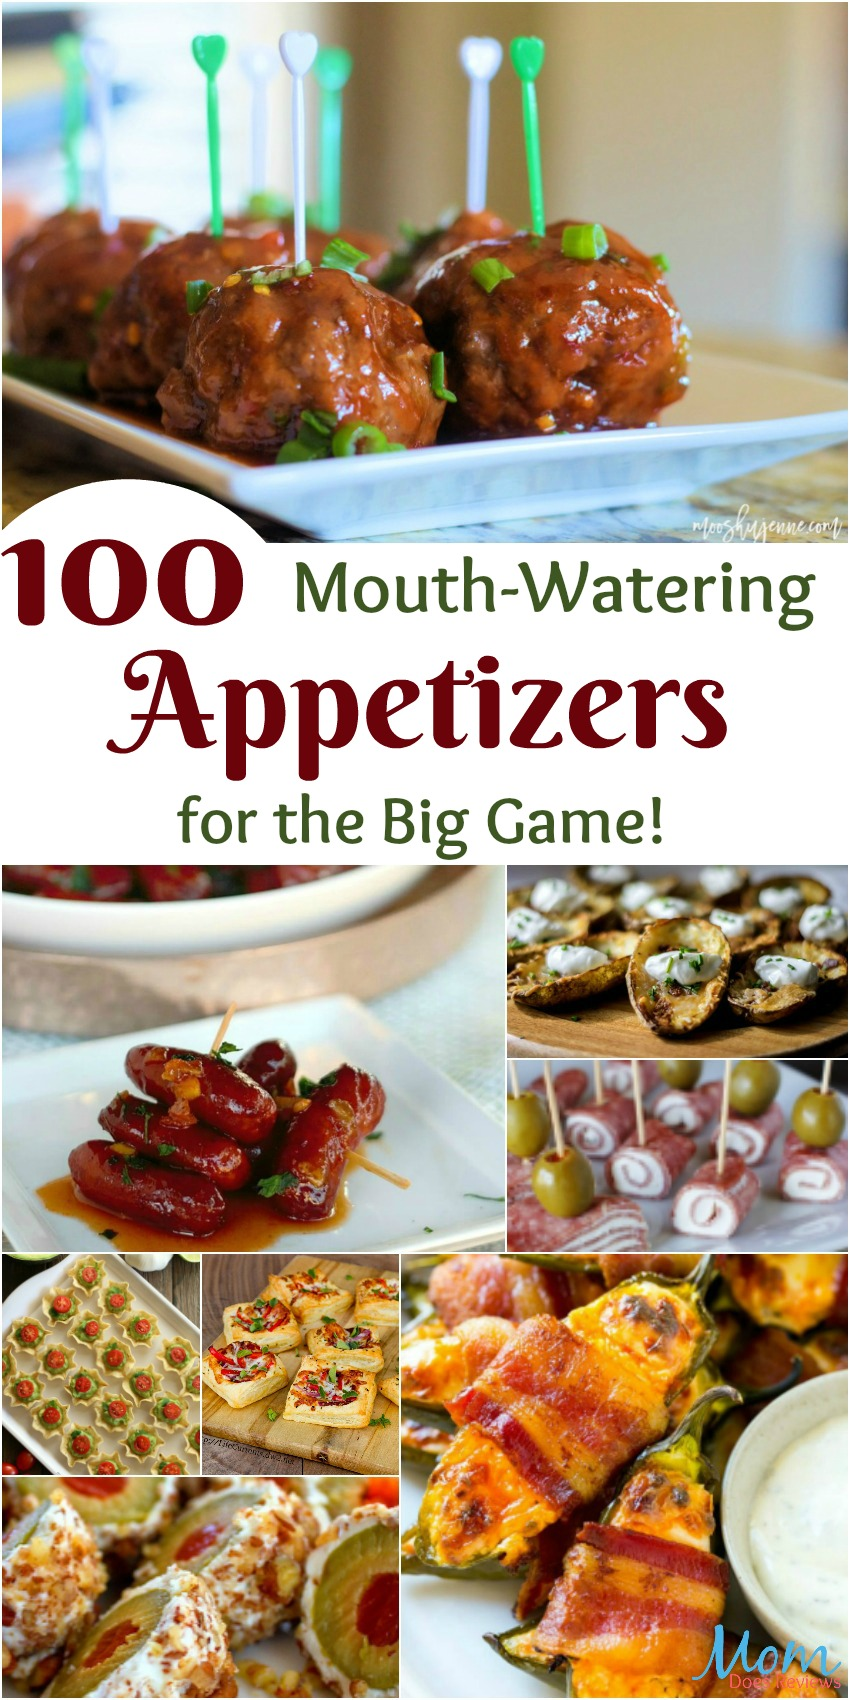 Score Big with these 100 Mouth-Watering Appetizers for the Big Game banner